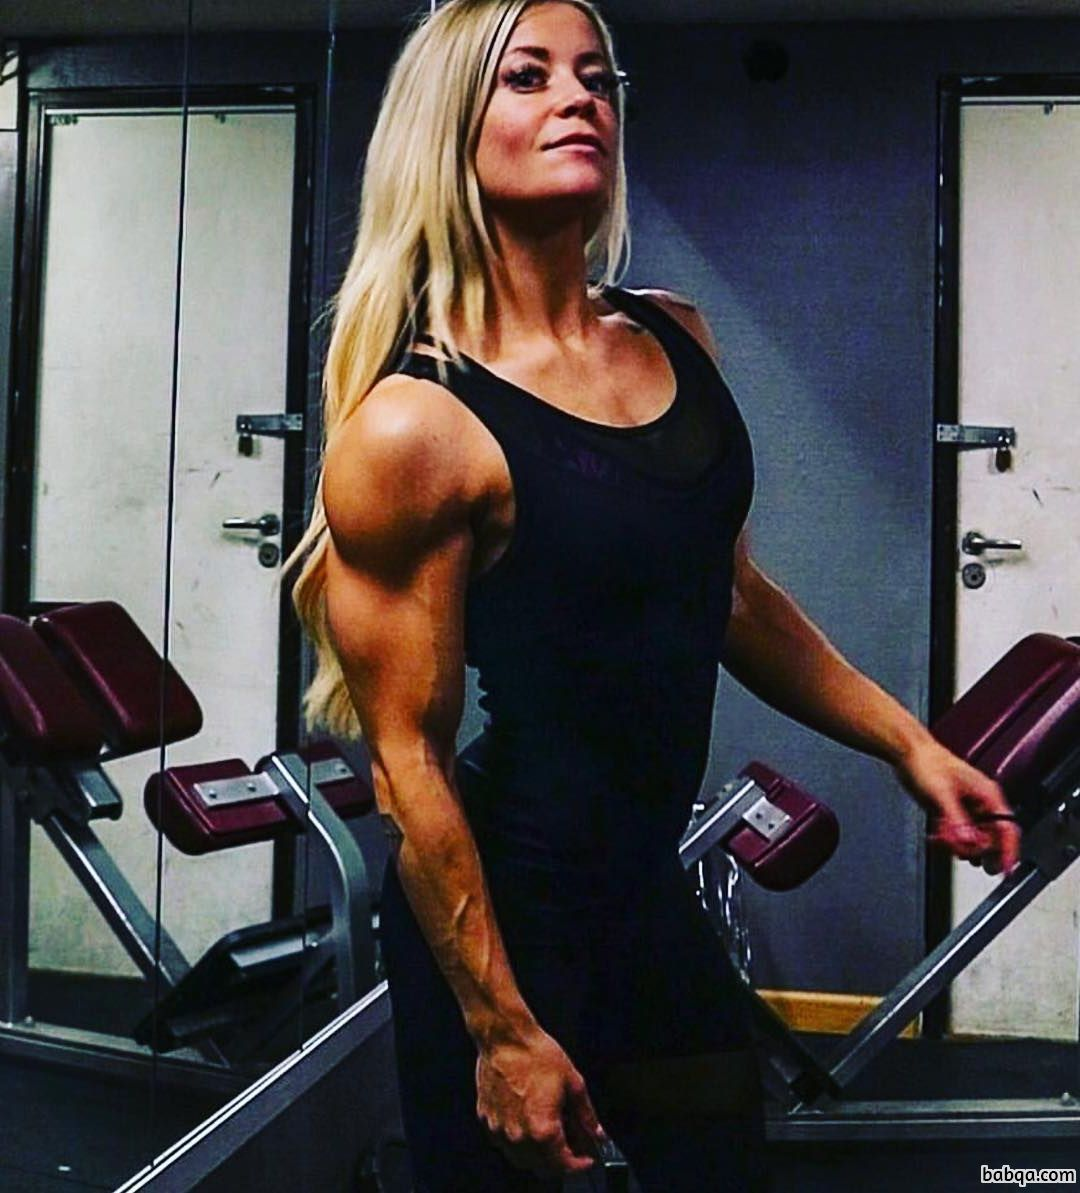 awesome female bodybuilder with strong body and muscle bottom photo from reddit